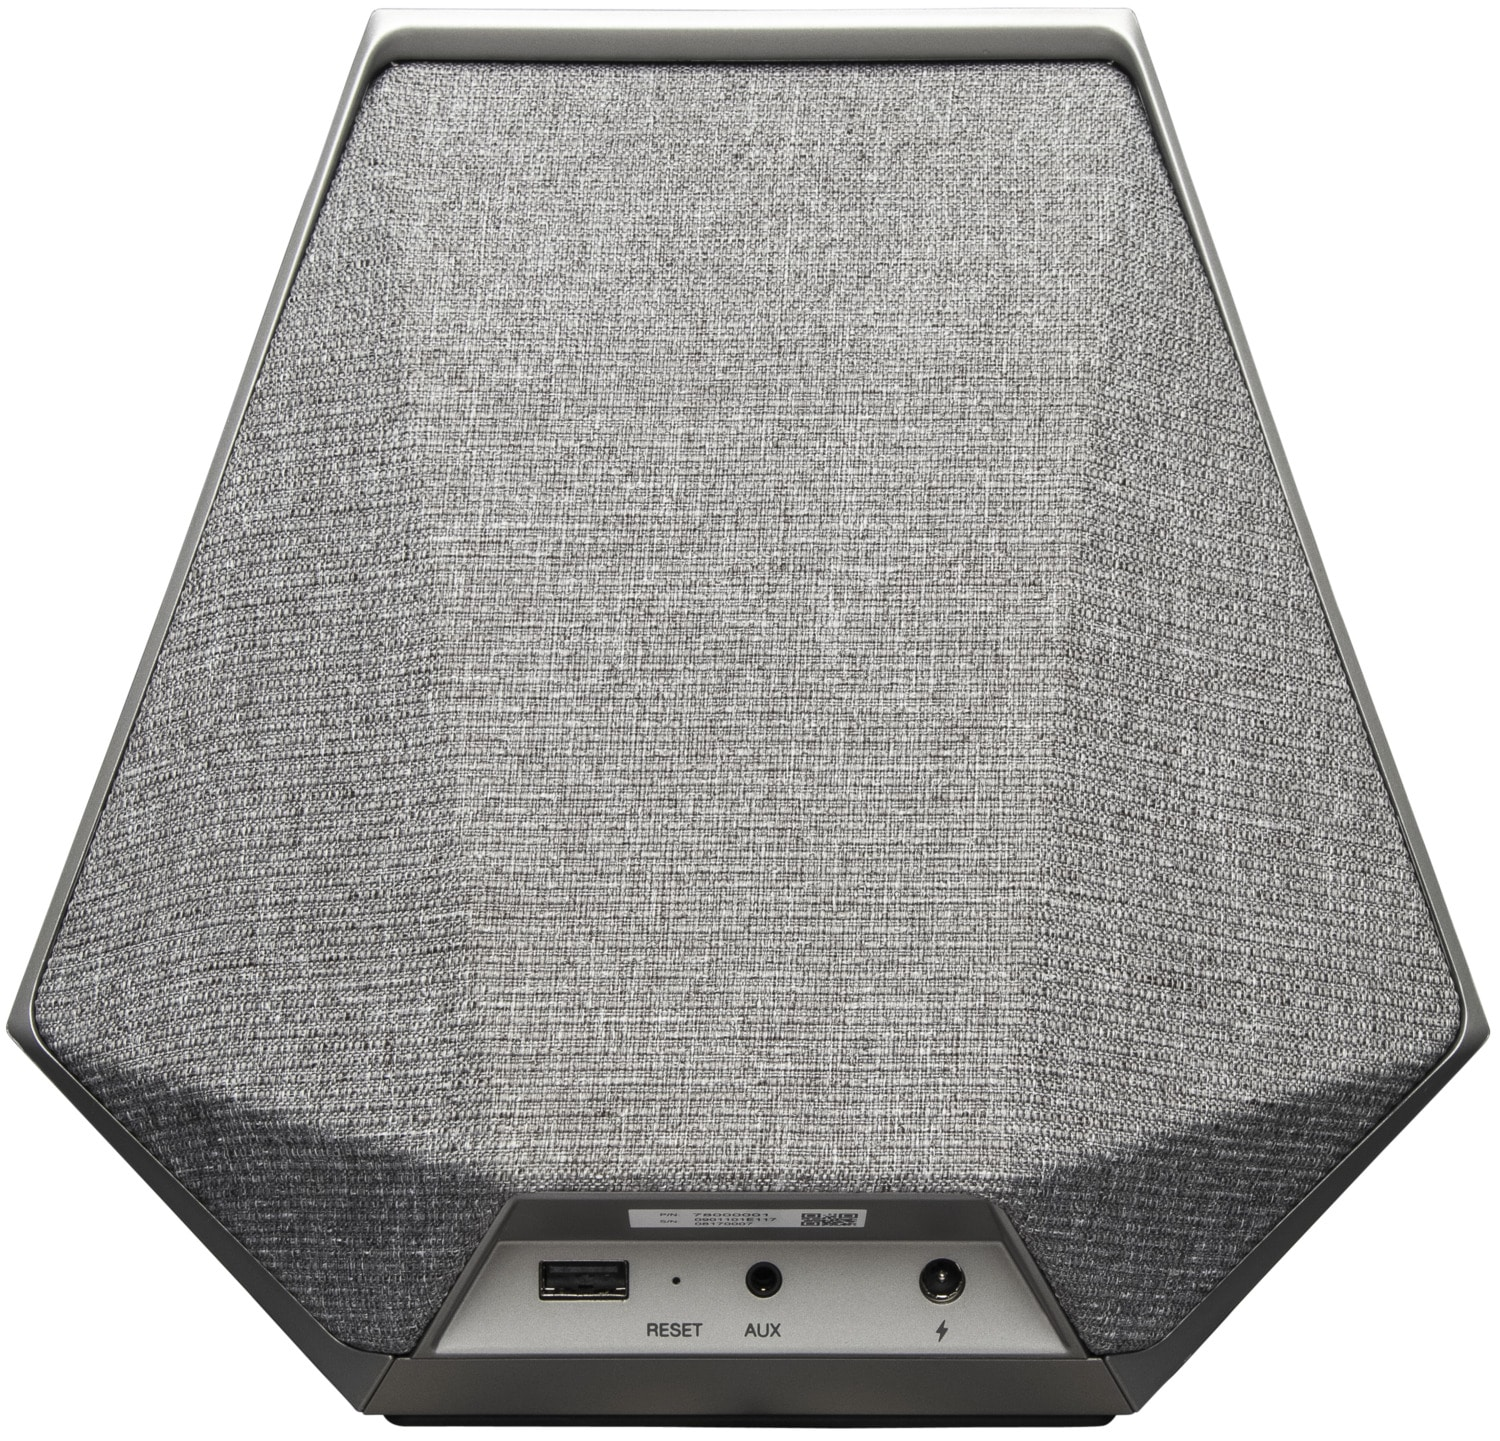 Music Wireless Speakers From Dynaudio